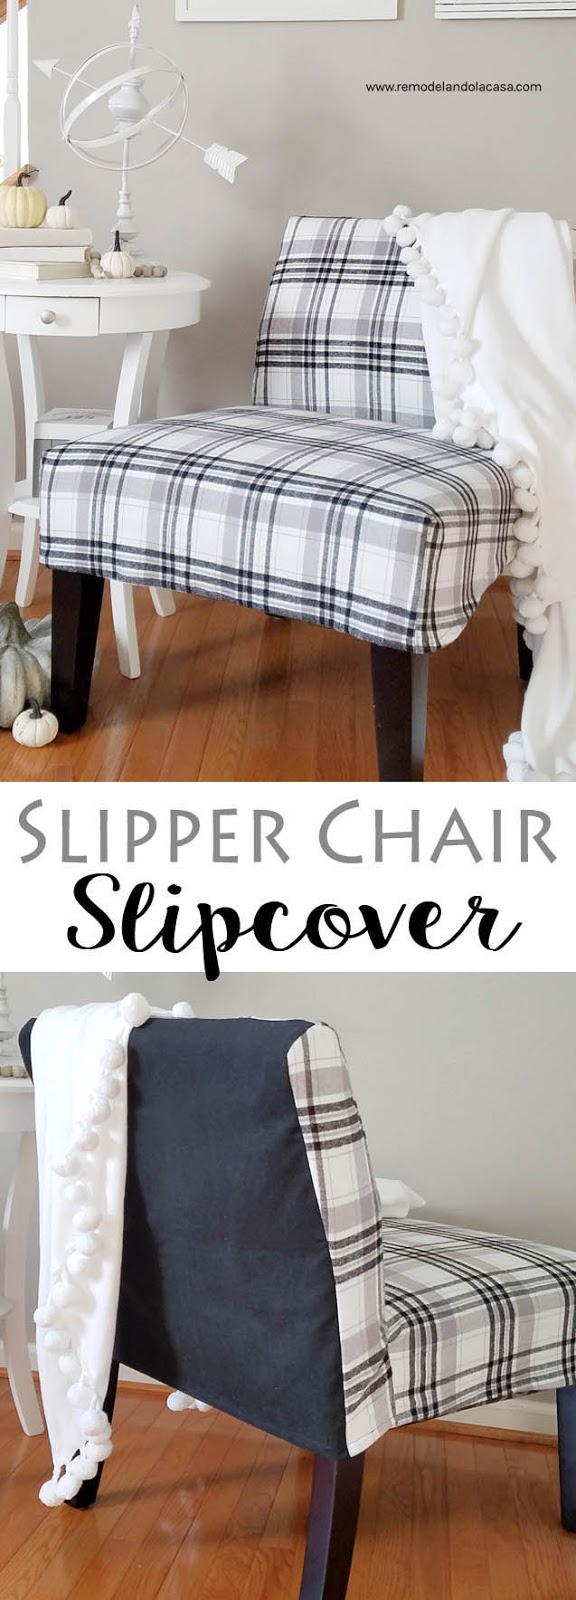 how to sew a slipcover - dual tone, black and white plaid fabric, oak floors